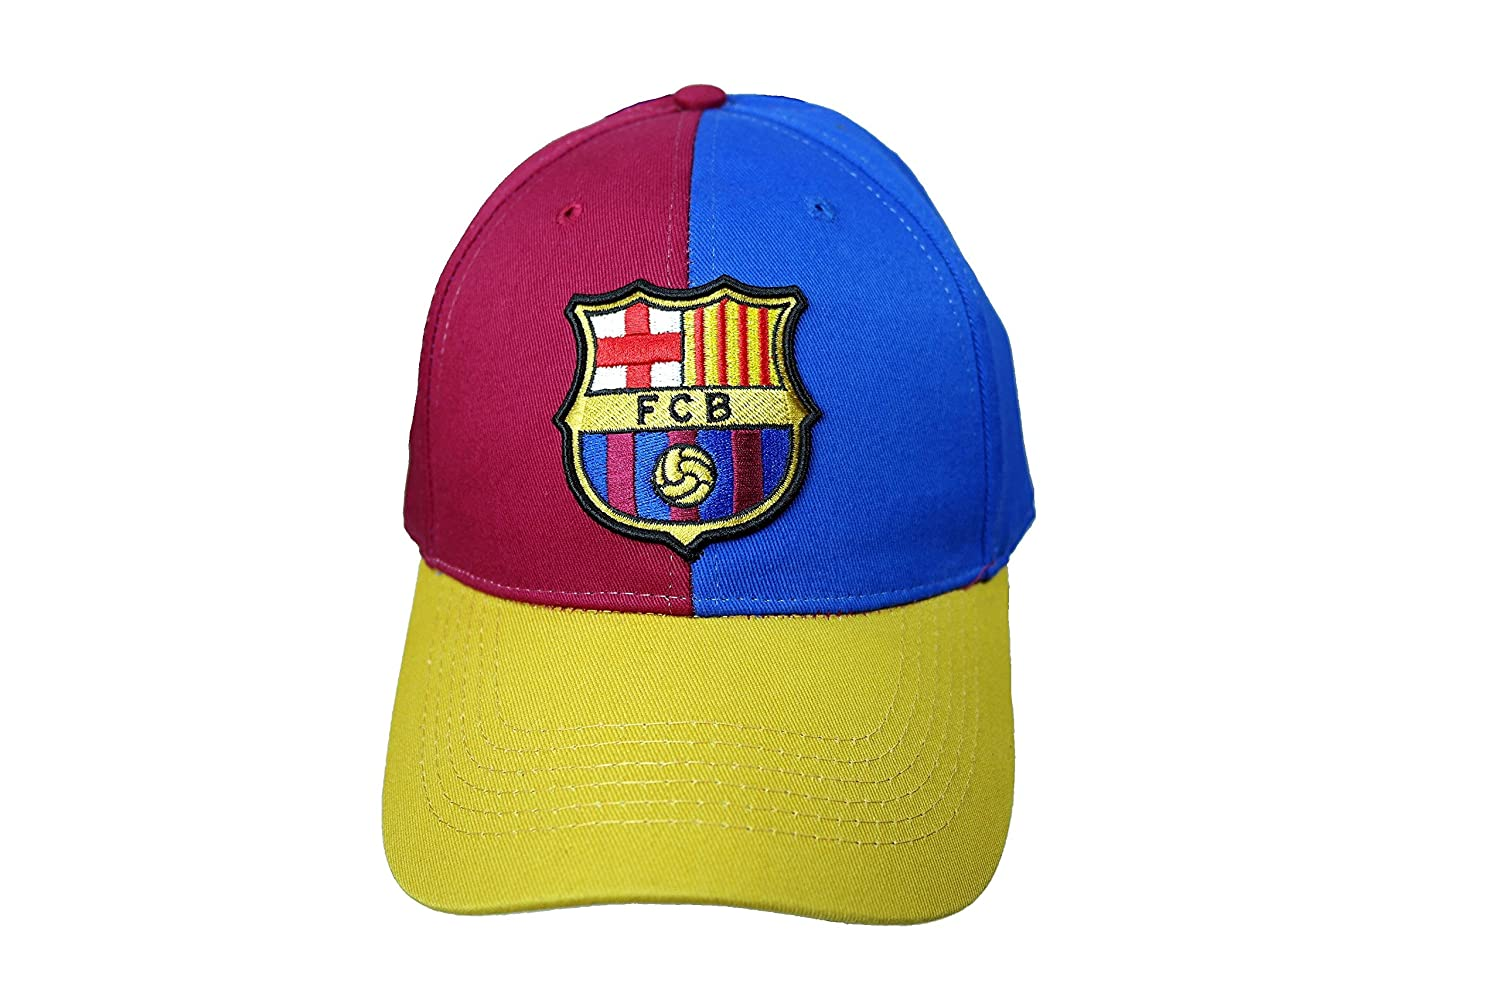 FC Barcelona Authentic Official Licensed Product Soccerキャップ – 05 – 4 B07BGXHHLP